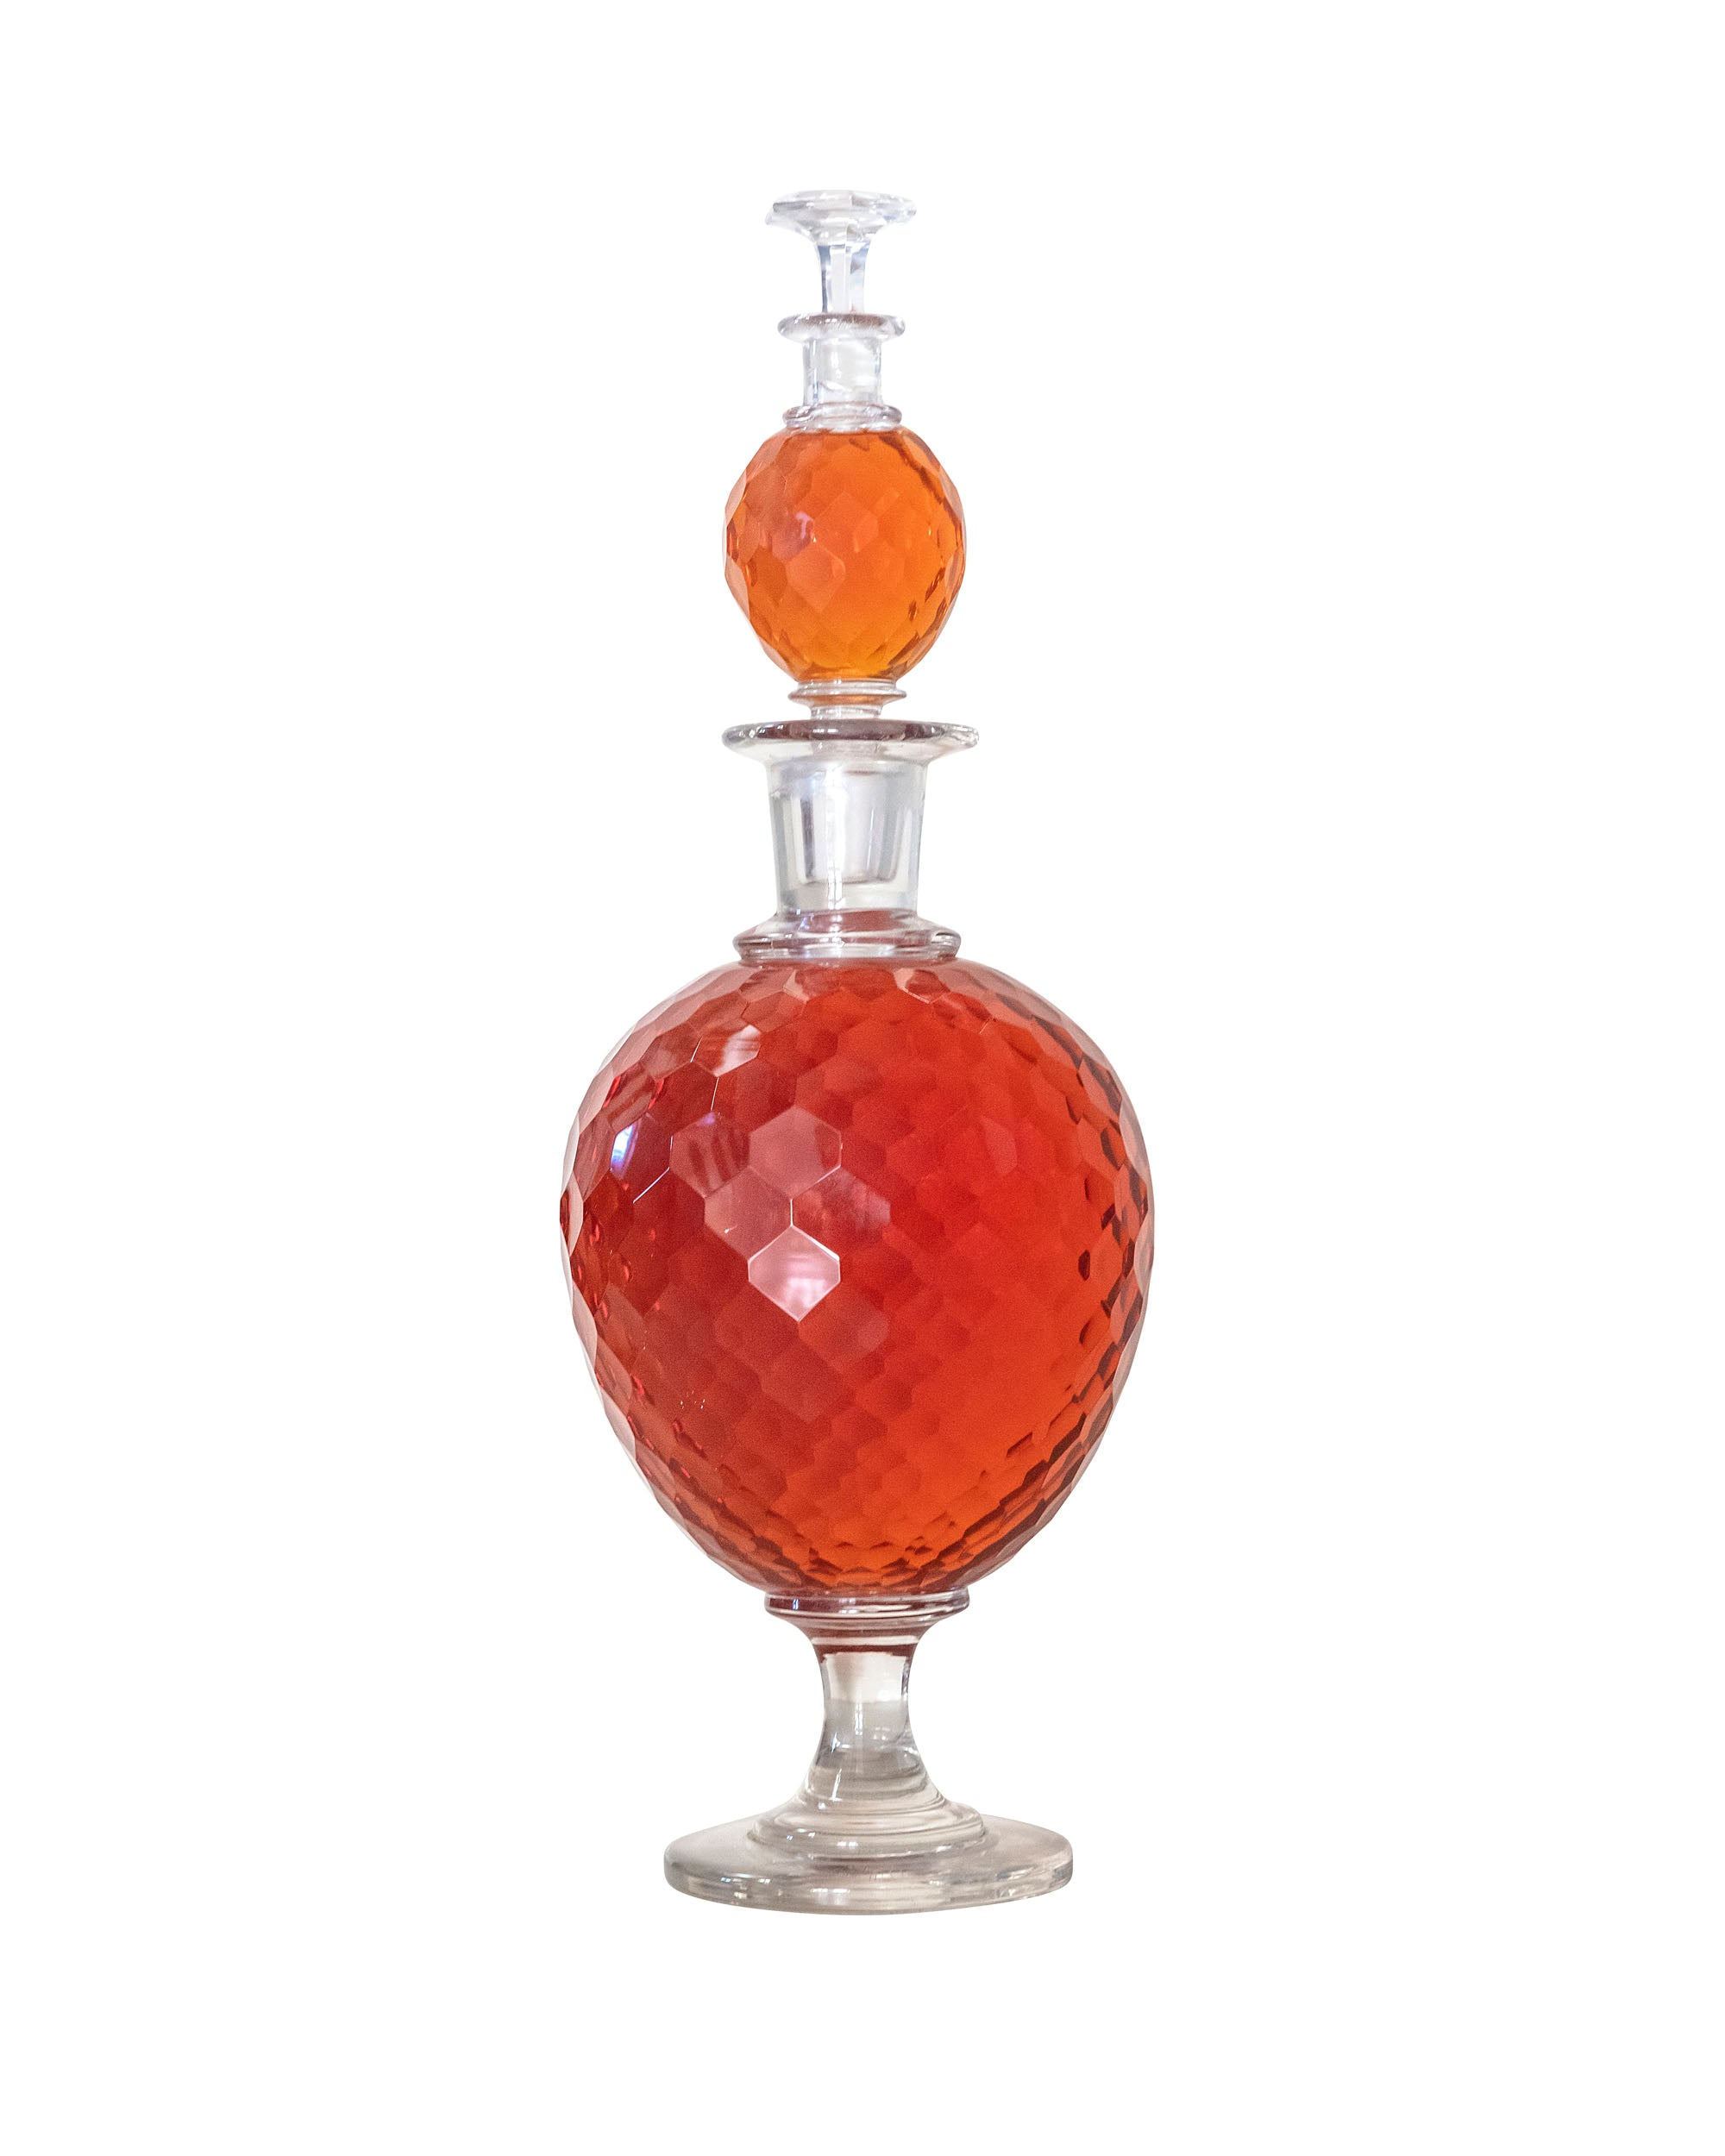 Large double amber Bacarrat perfume bottle made of glass